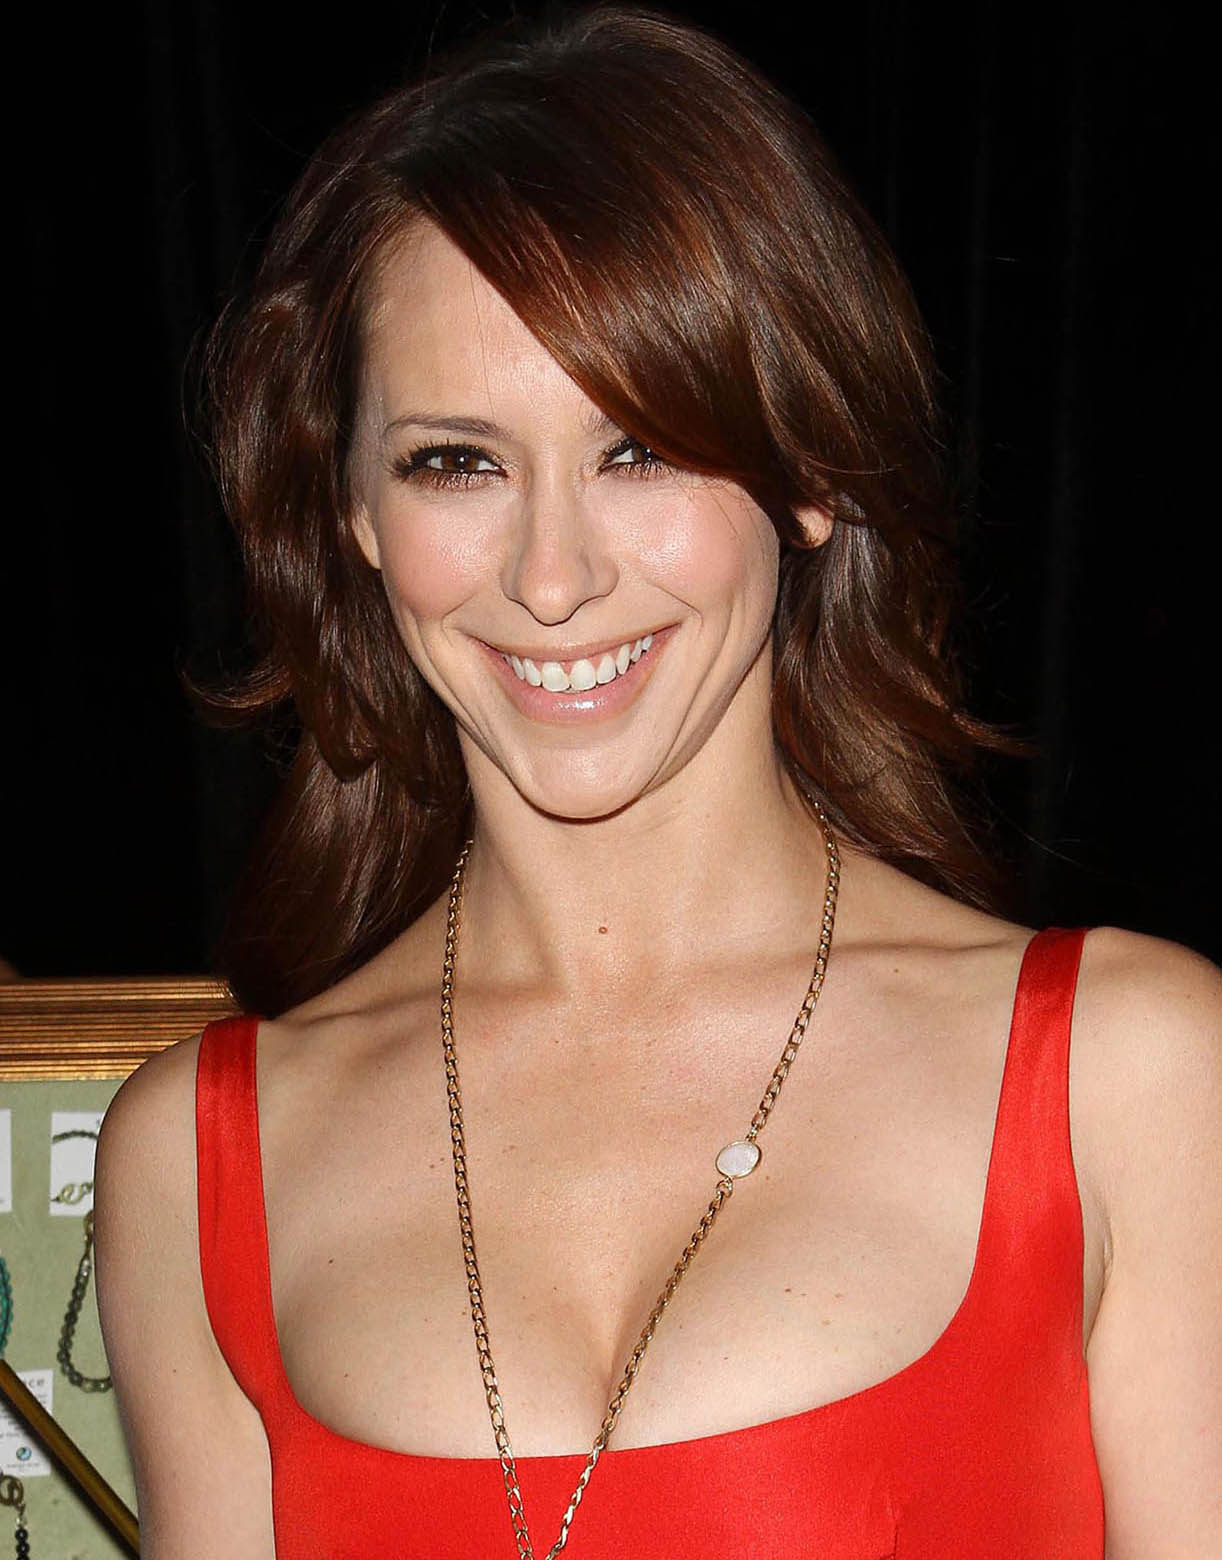 http://3.bp.blogspot.com/-MxTb6jbNVh4/TtzaL8mG0jI/AAAAAAAAAJM/xNfS94RjnZM/s1600/jennifer_love_hewitt_red_tight_dress.jpg